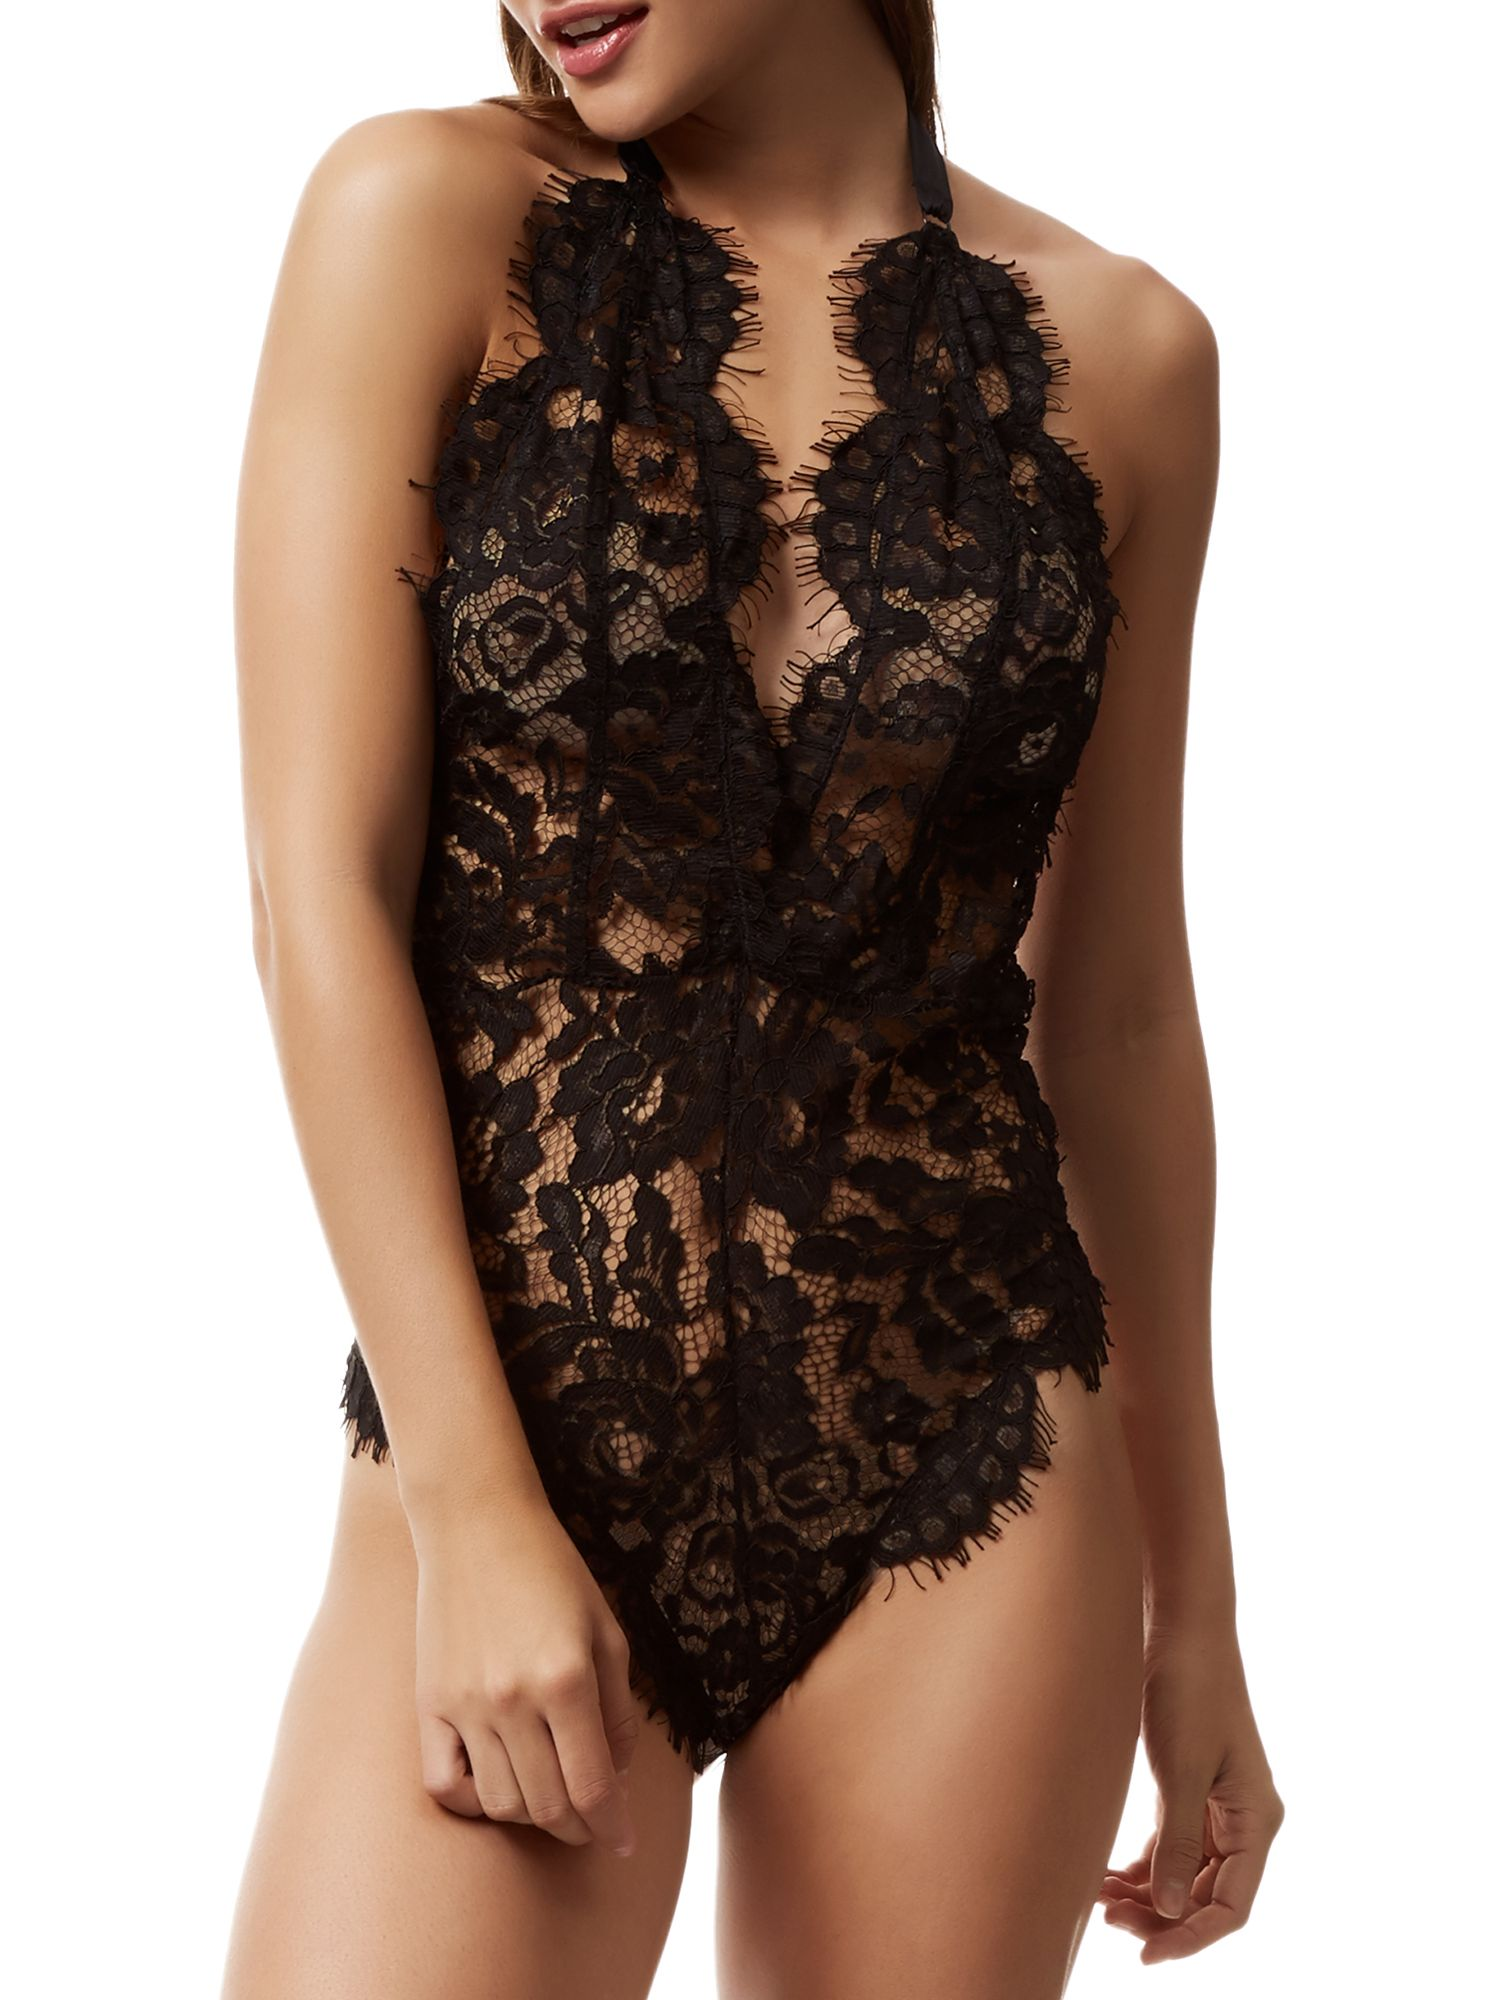 BlueBella Bluebella Natalia Lace Body, Black